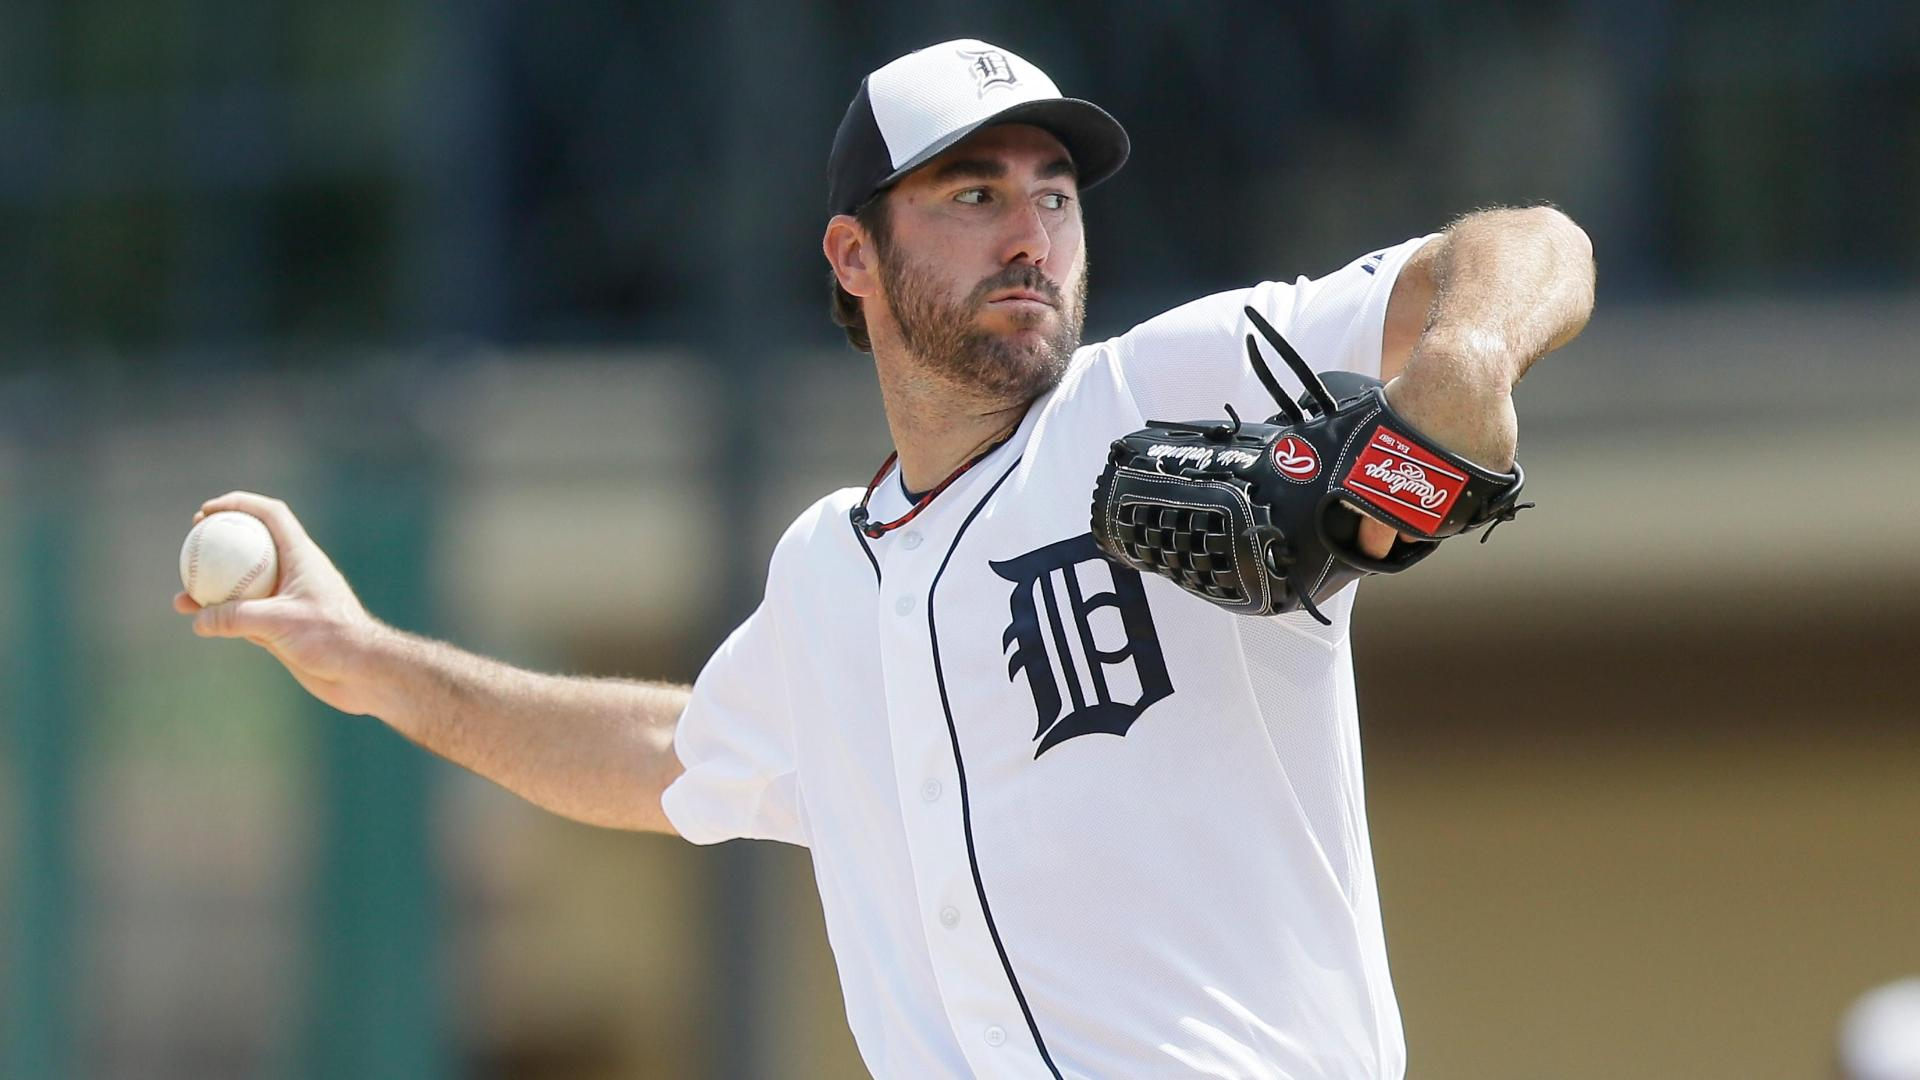 http://a.espncdn.com/media/motion/2015/0402/dm_150402_mlb_buster_on_verlander_dl913/dm_150402_mlb_buster_on_verlander_dl913.jpg